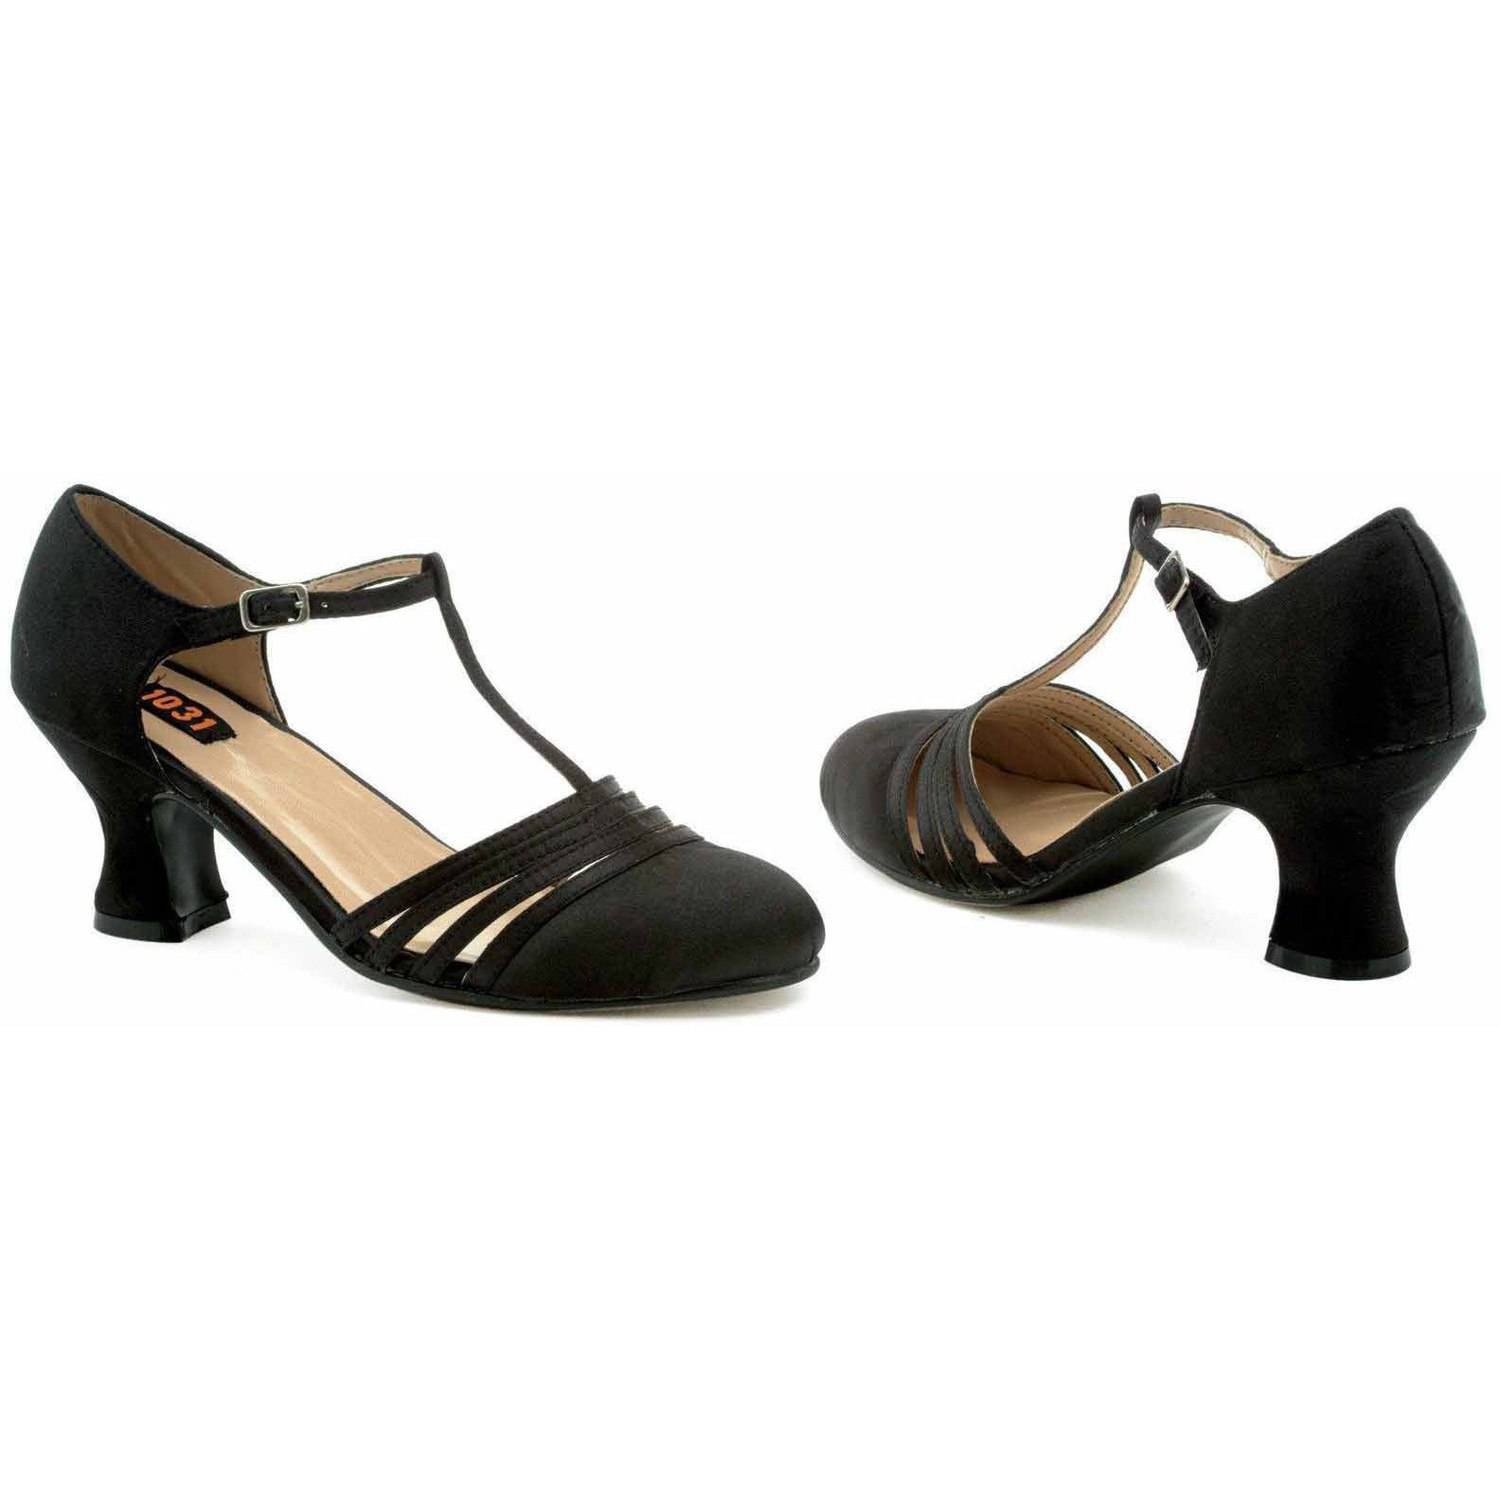 Lucille Black Shoes Women's Adult Halloween Costume Accessory